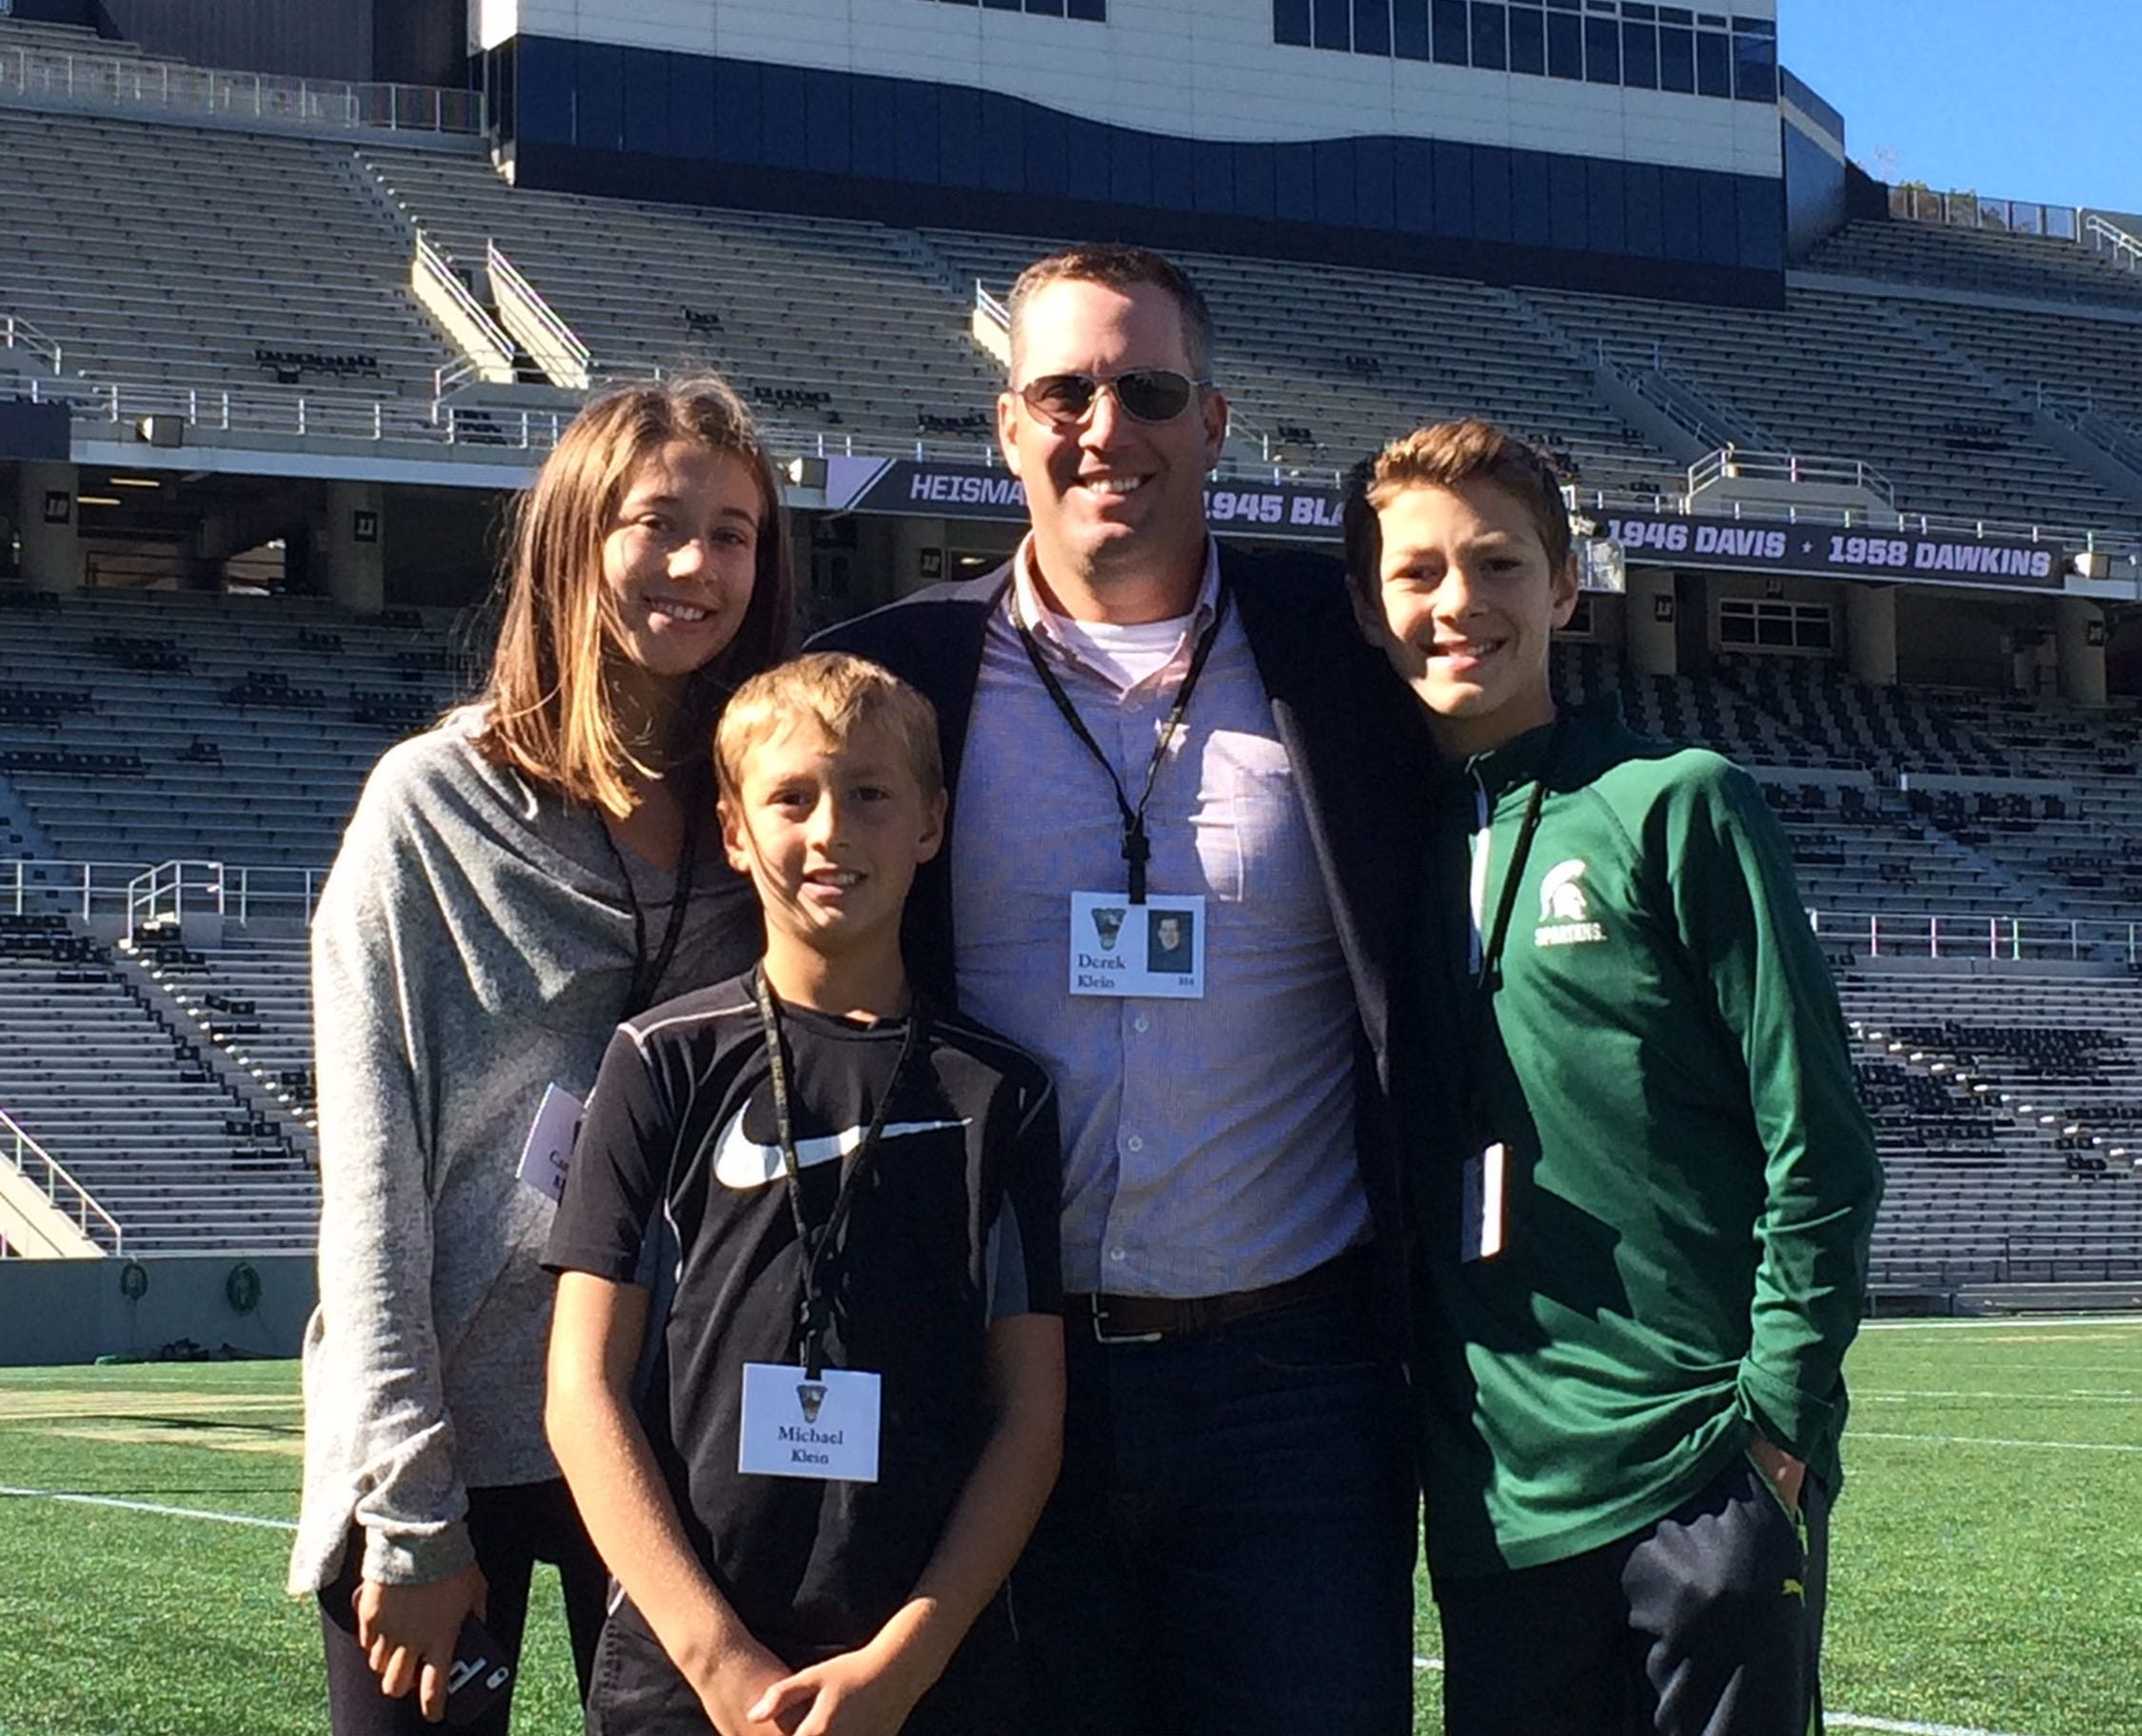 Former Army football player Derek Klein, second right, stands with his family on the field at Michie Stadium.